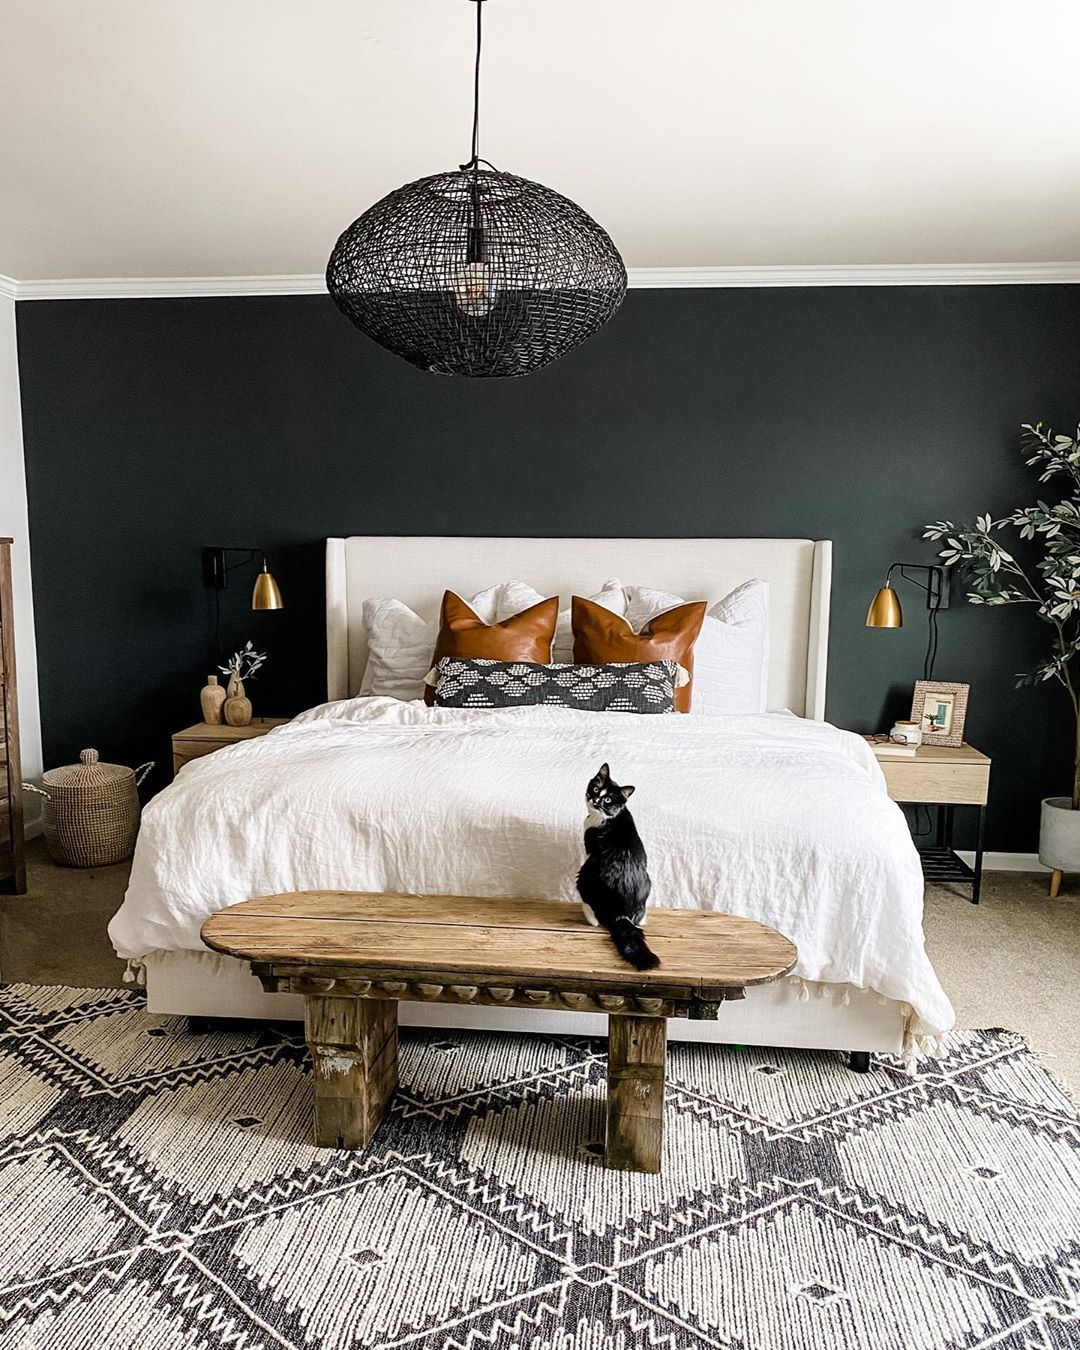 Jess Hupf House On 77th On Instagram This Wrought Iron Accent Wall Color Got Me So Inspired I Ve Started P In 2020 Bedroom Design Home Decor Master Bedrooms Decor